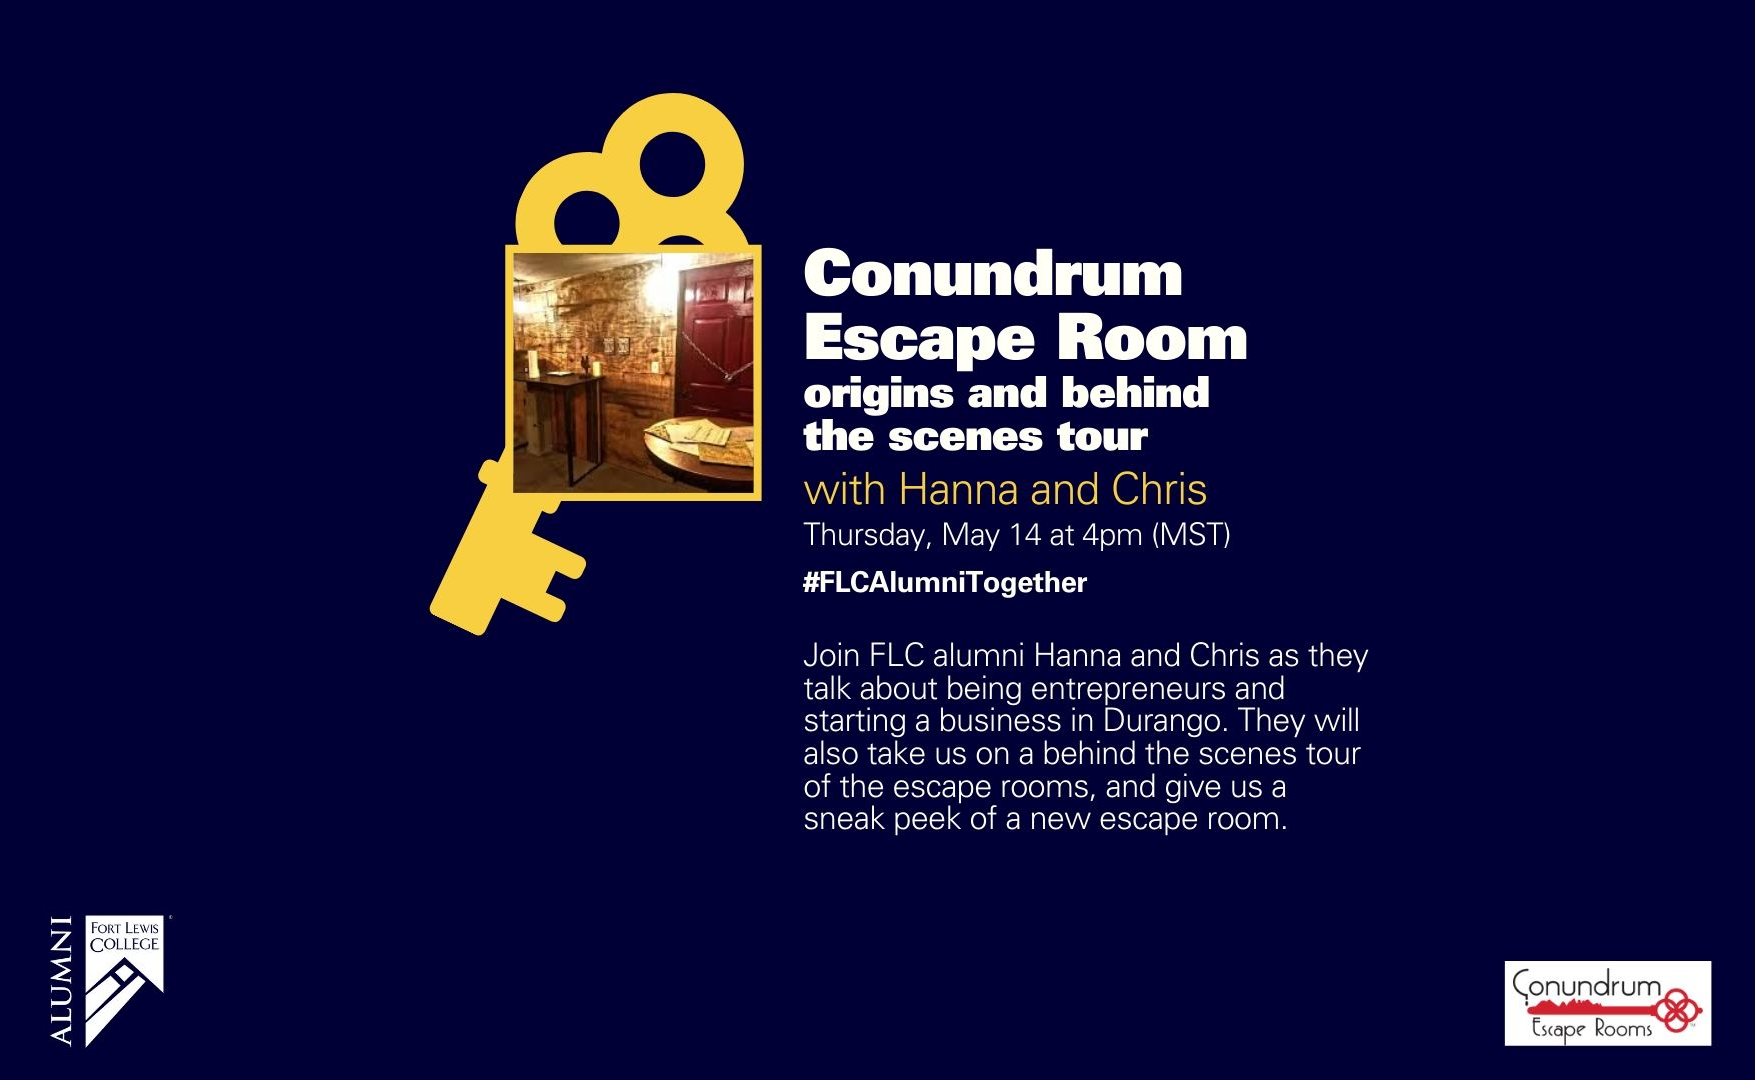 conundrum escape room promo